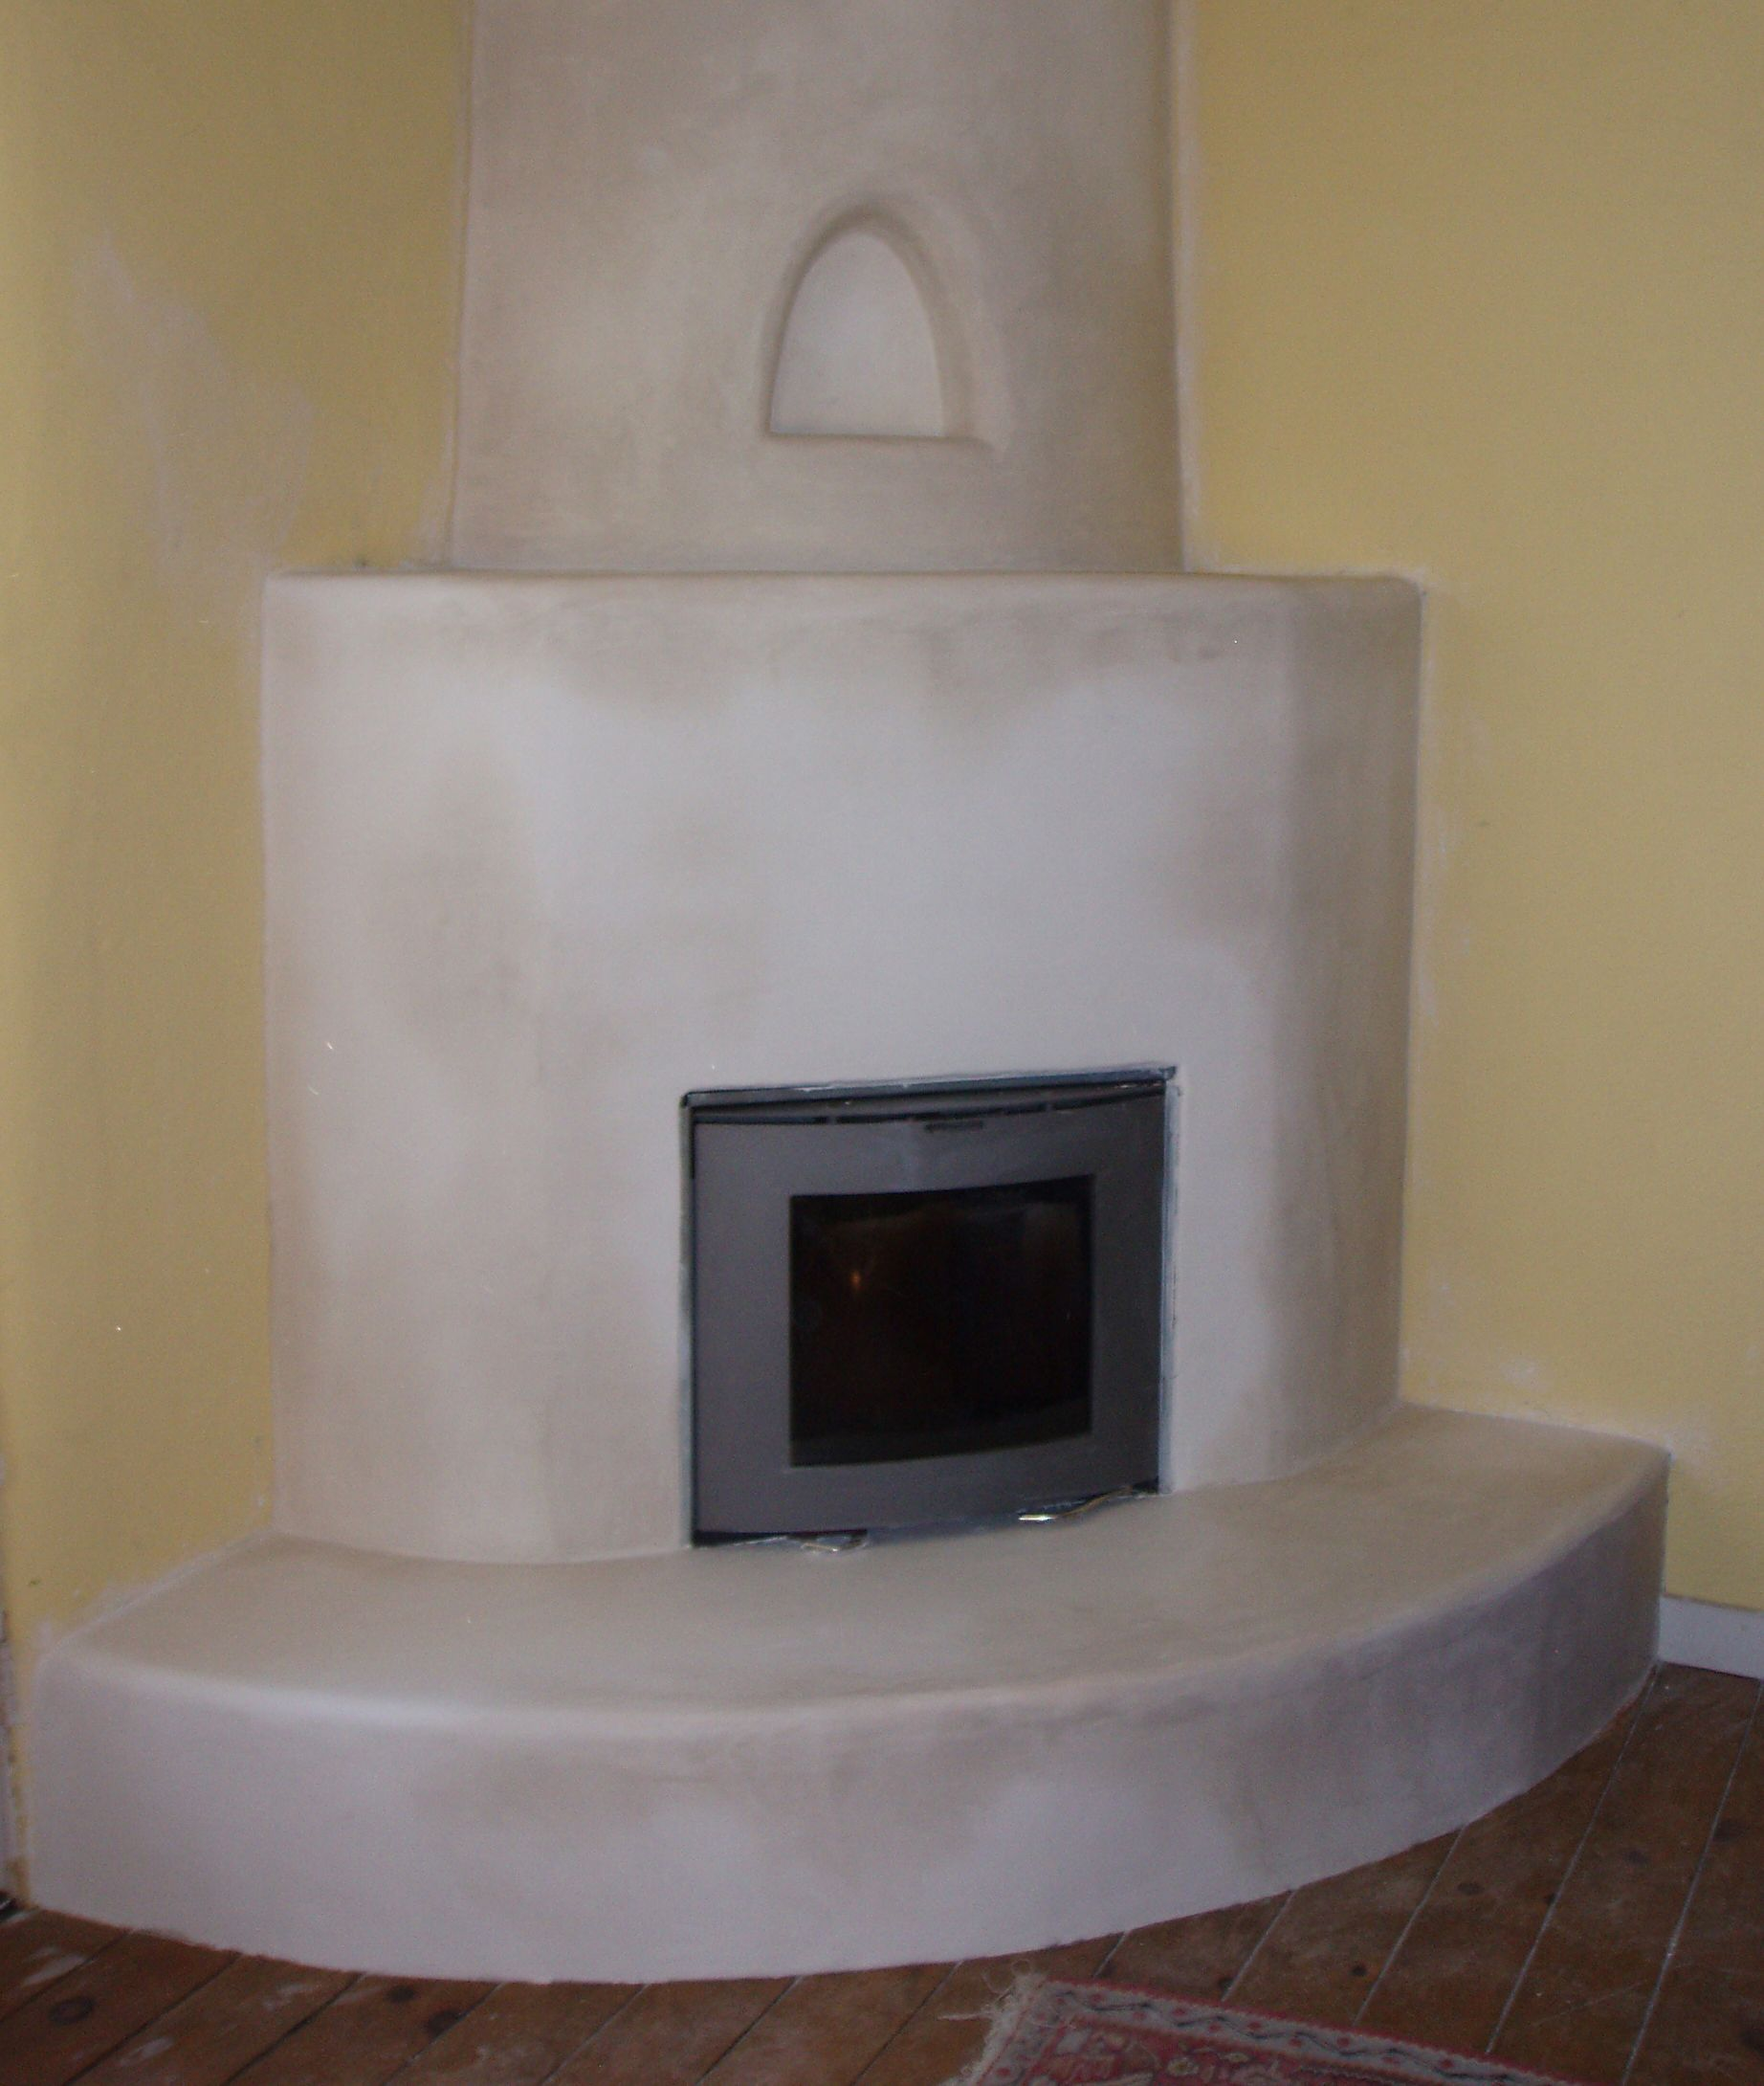 Awesome A High Efficiency Scan Dsa 4 Insert In A Kiva Fireplace Interior Design Ideas Oteneahmetsinanyavuzinfo